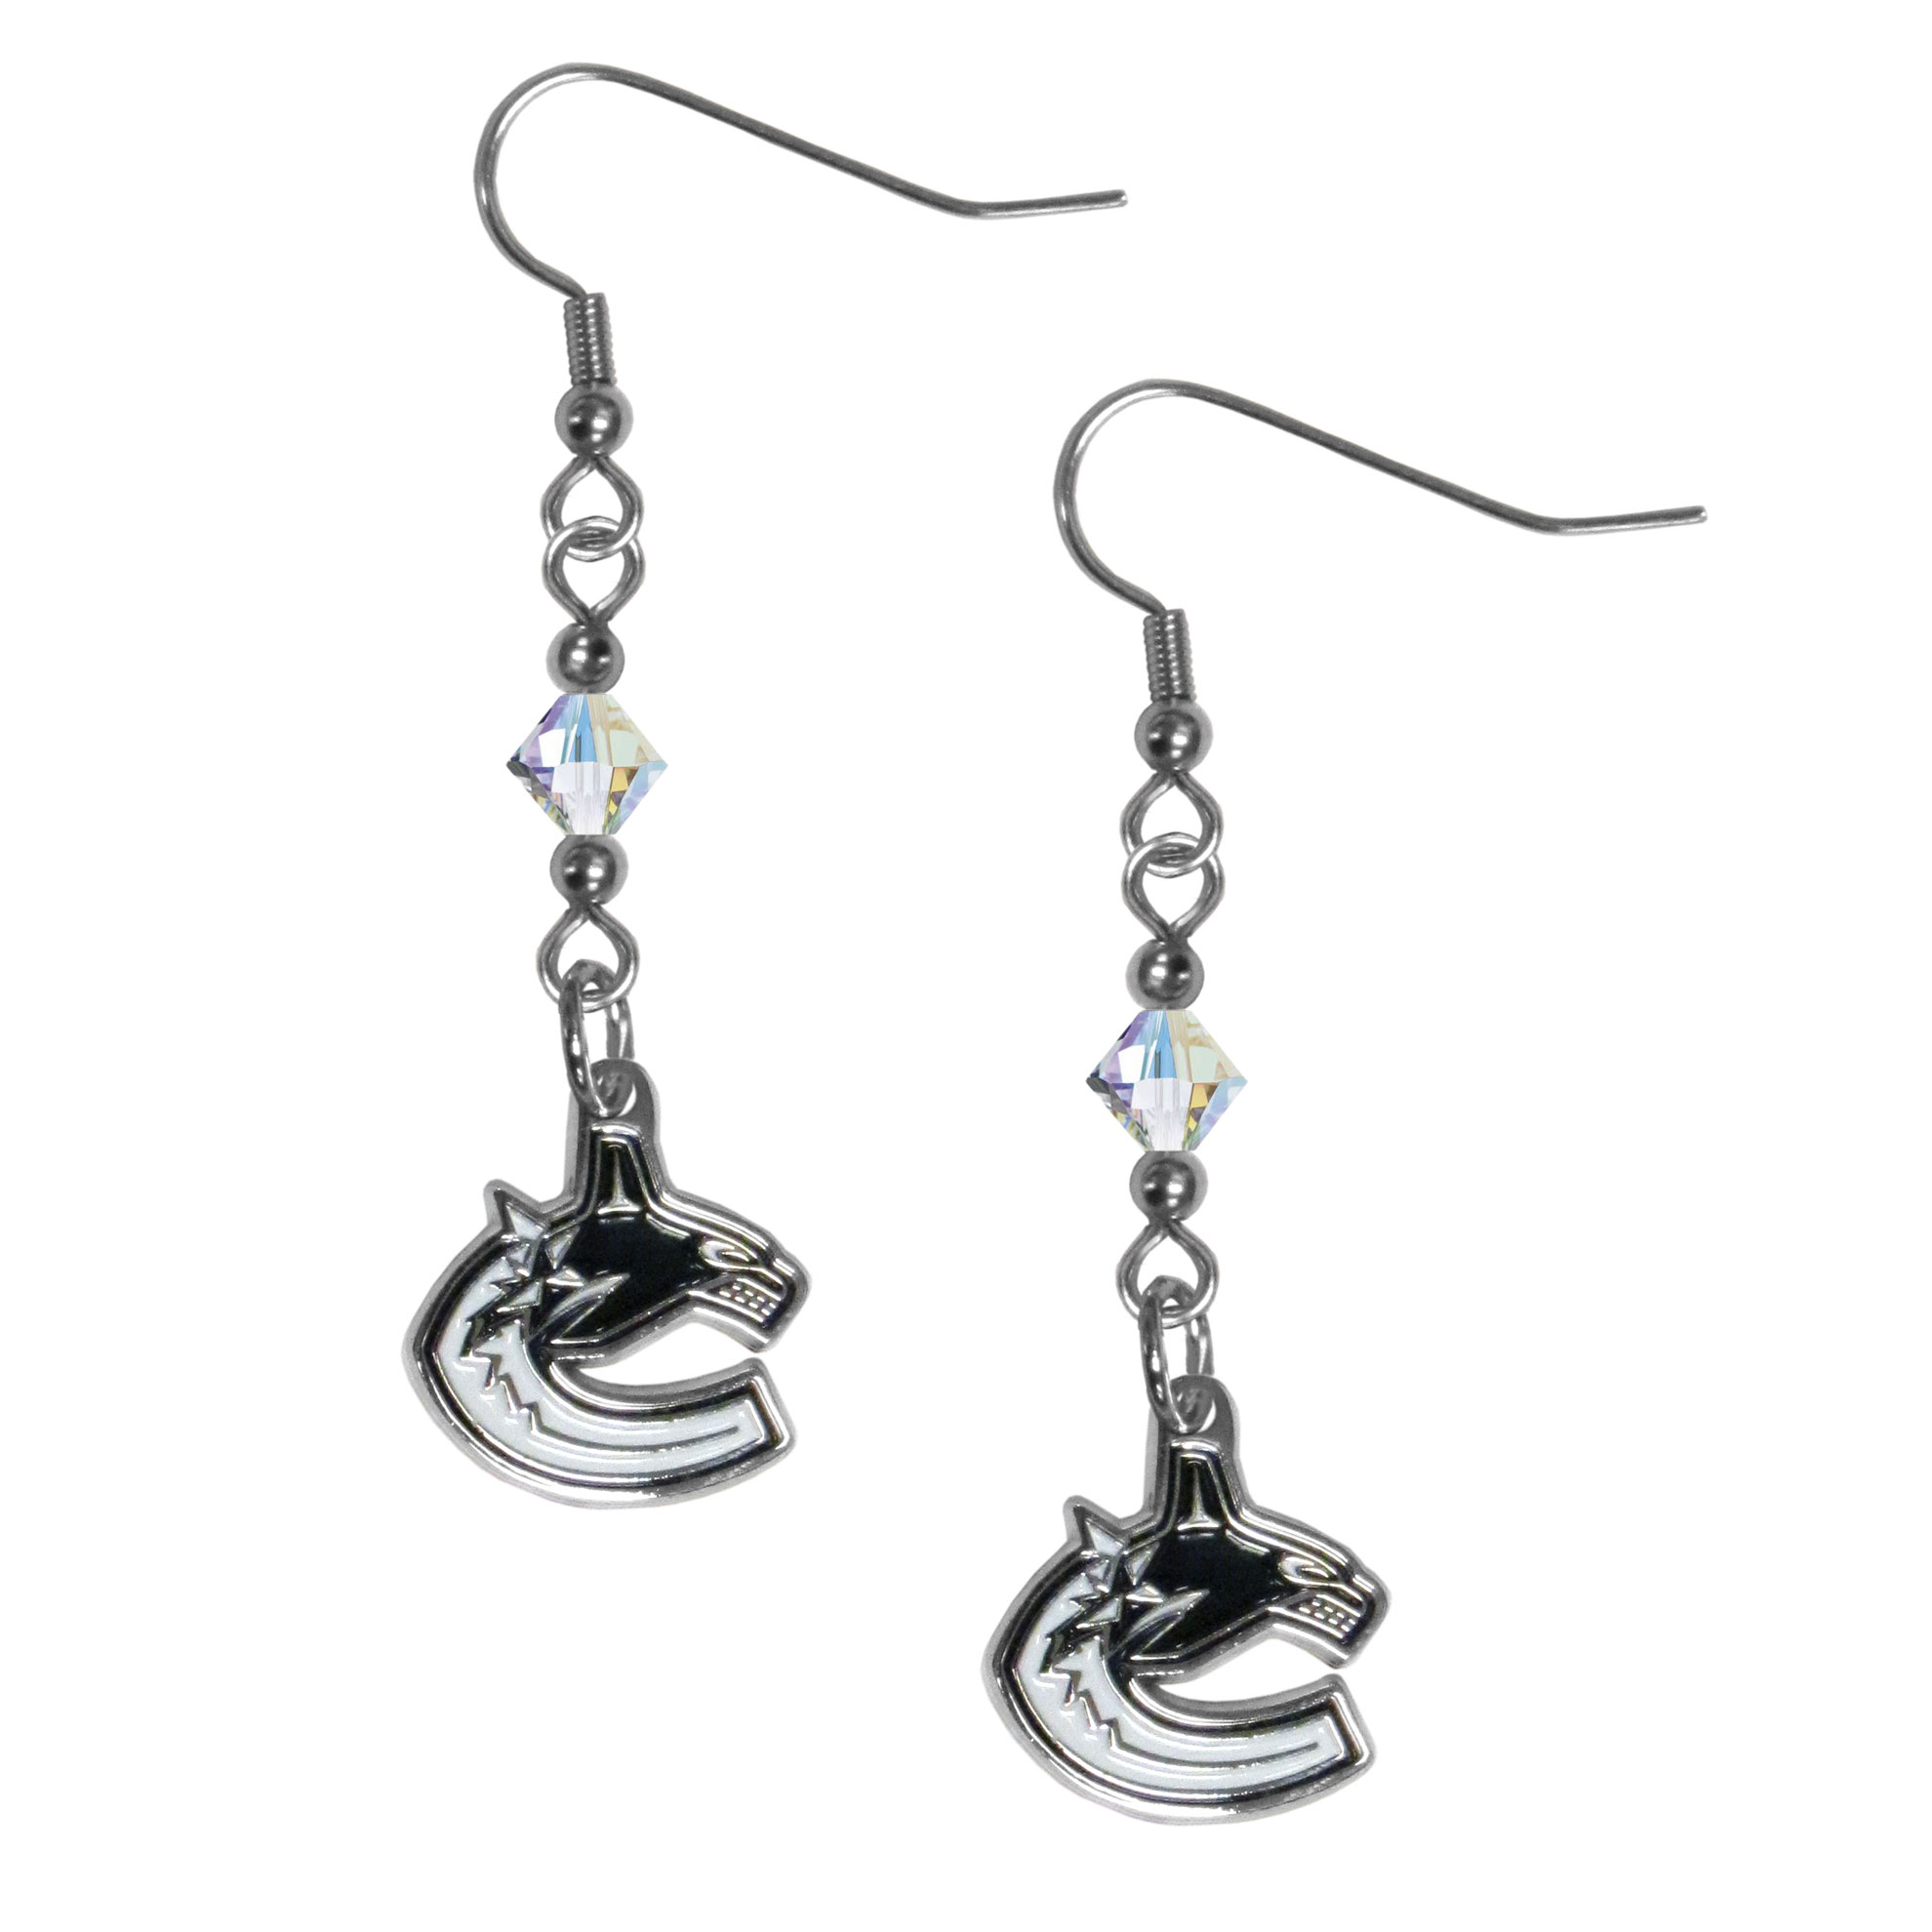 Vancouver Canucks® Crystal Dangle Earrings - Our crystal dangle earrings are the perfect accessory for your game day outfit! The earrings are approximately 1.5 inches long and feature an iridescent crystal bead and nickel free chrome Vancouver Canucks® charm on nickel free, hypoallergenic fishhook posts.